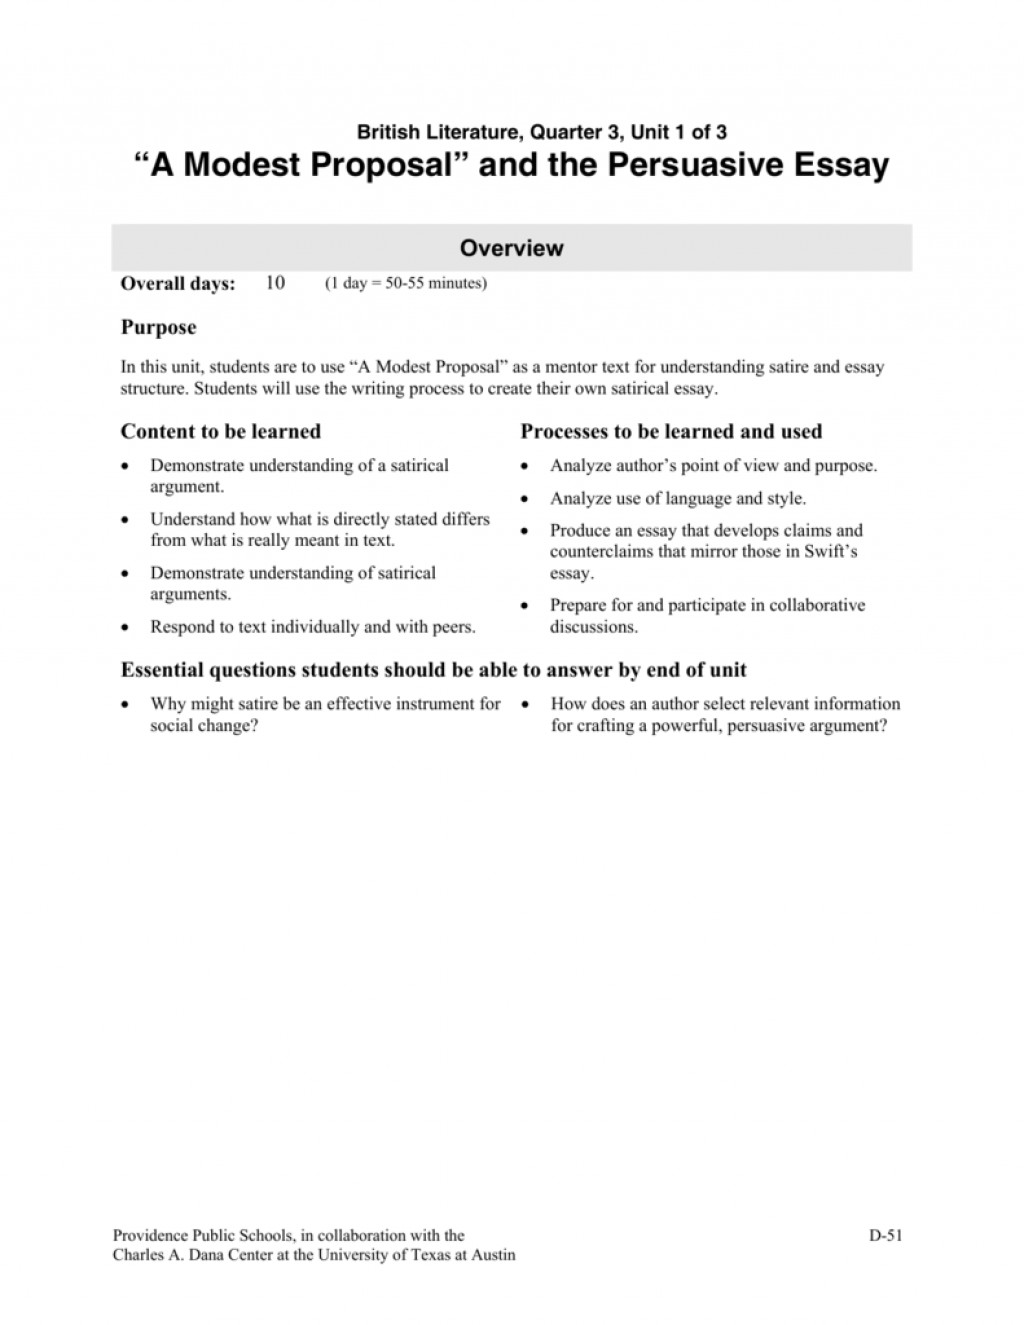 008 Modest Proposal Essay Example 008803036 1 Exceptional Conclusion Topics Prompts Large